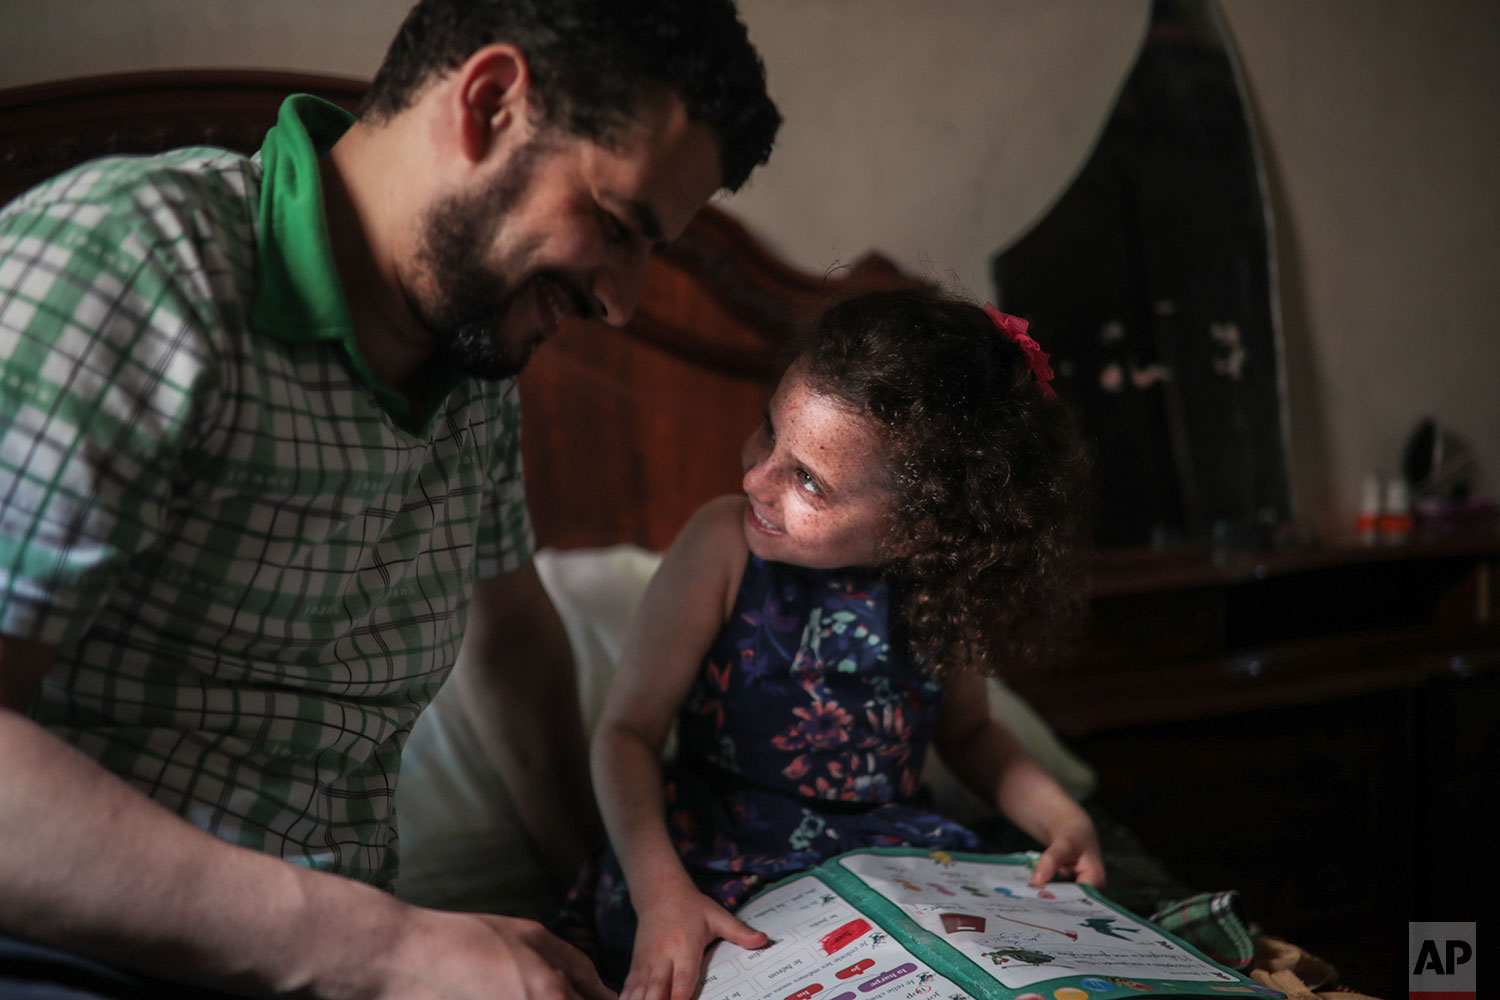 In this Tuesday, July 23, 2019 photo, Said El Mohamadi shares a moment with his 6 year old daughter Romaisae who is affected by a rare disorder called xeroderma pigmentosum, or XP, in their home in the town of Sale, near Rabat, Morocco. (AP Photo/Mosa'ab Elshamy)